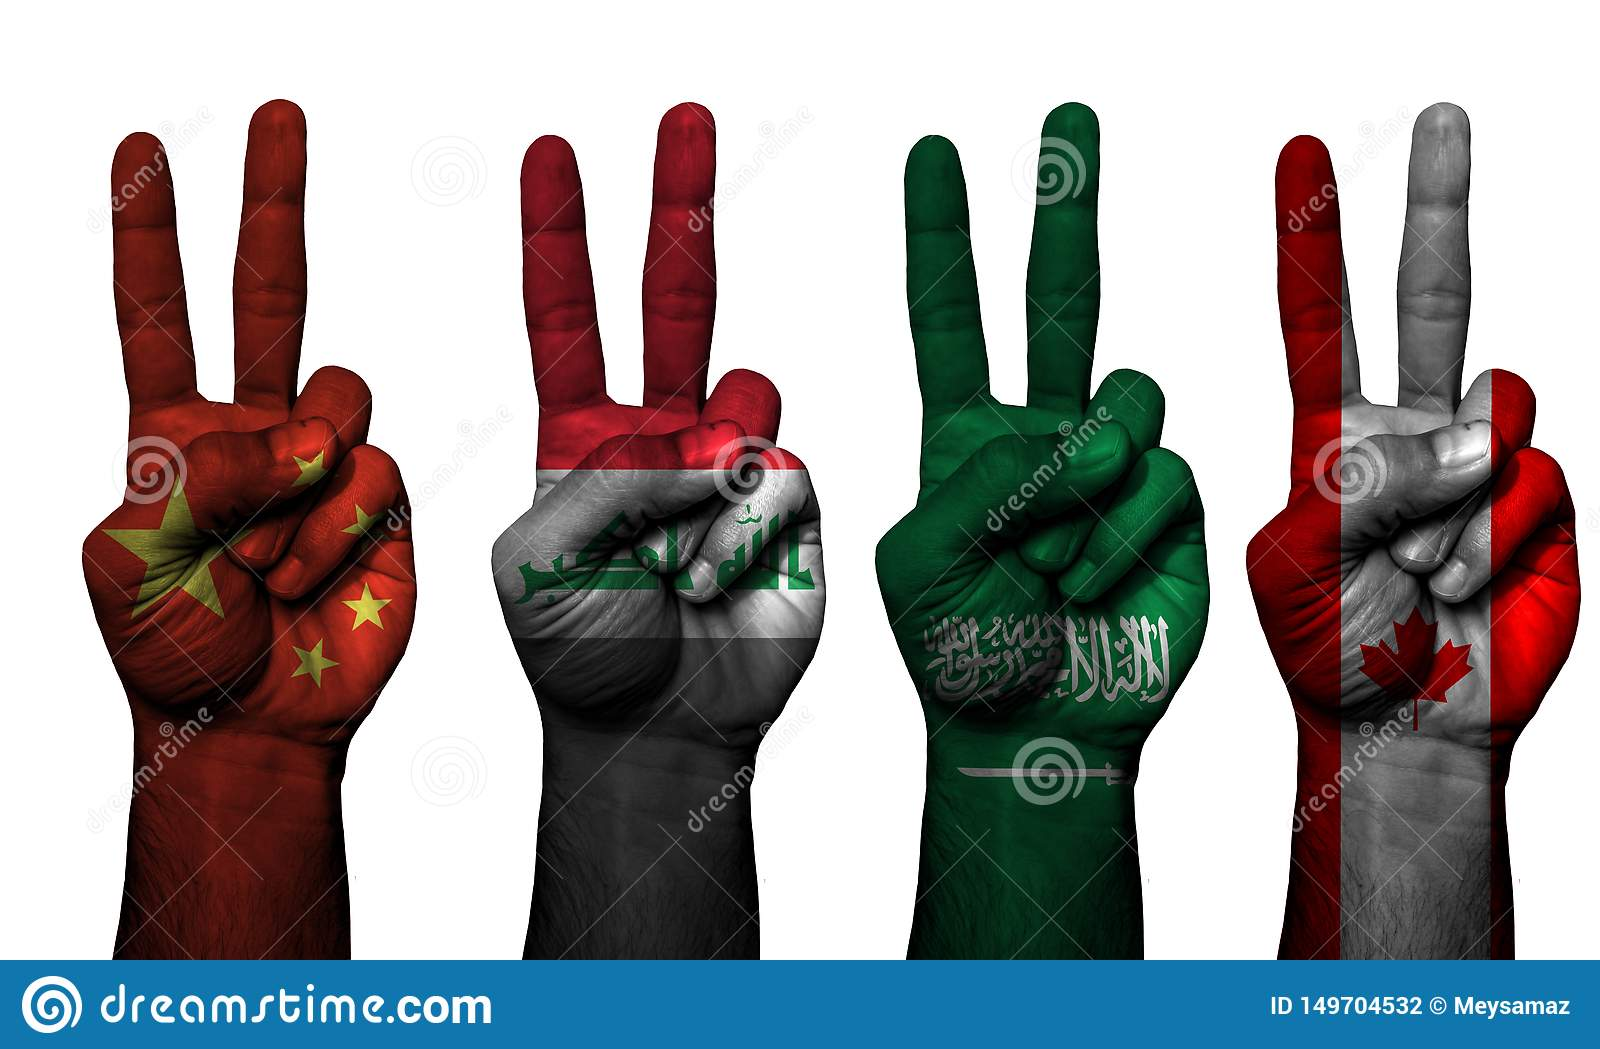 Peace hand symbol 4 countries